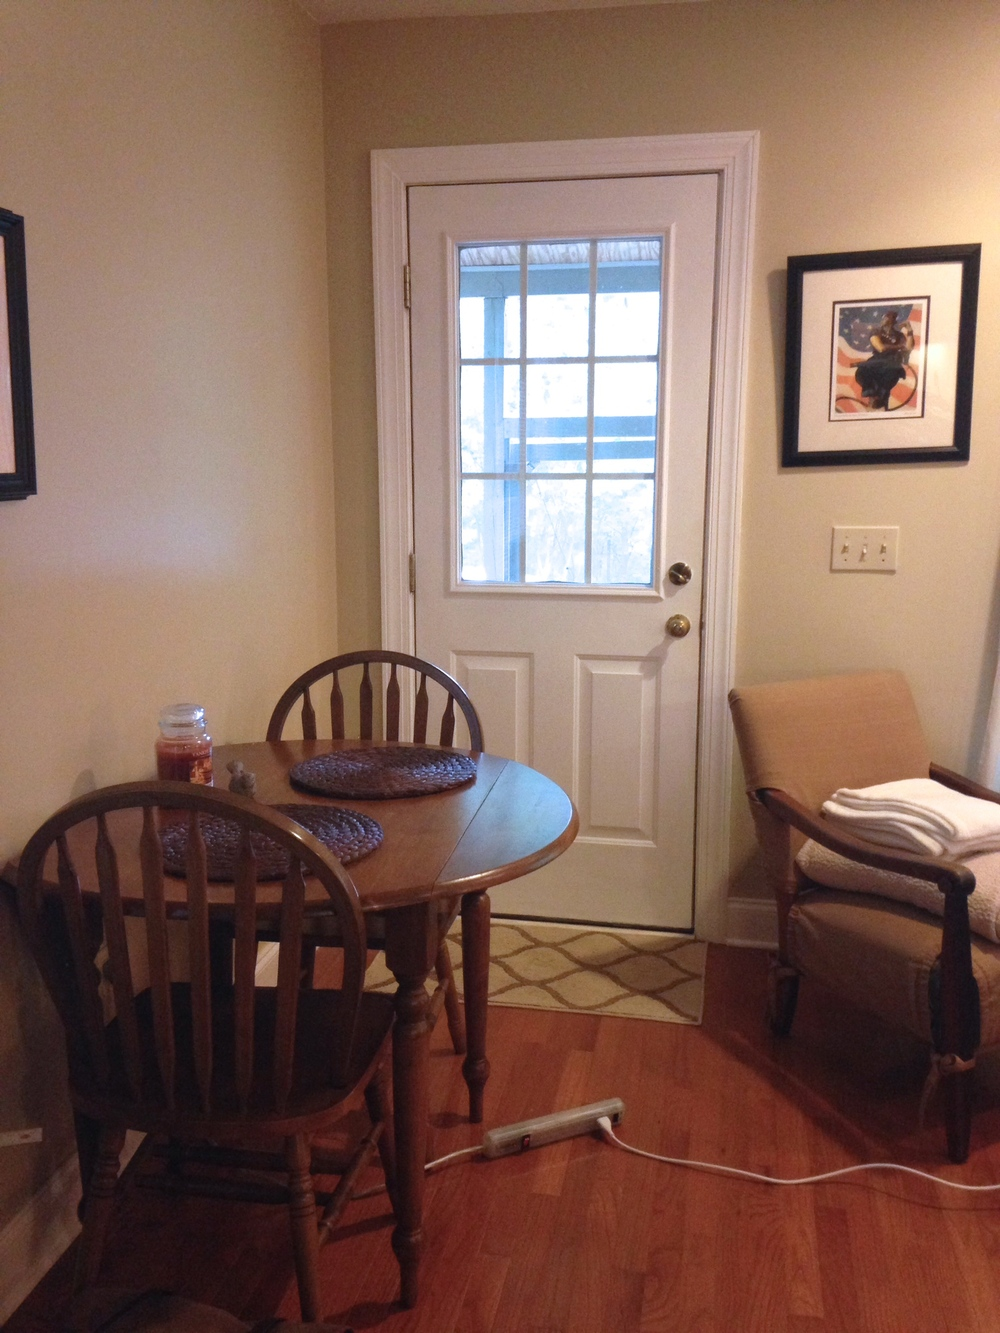 The dining room portion of our living space that often doubles as a desk for my design work.